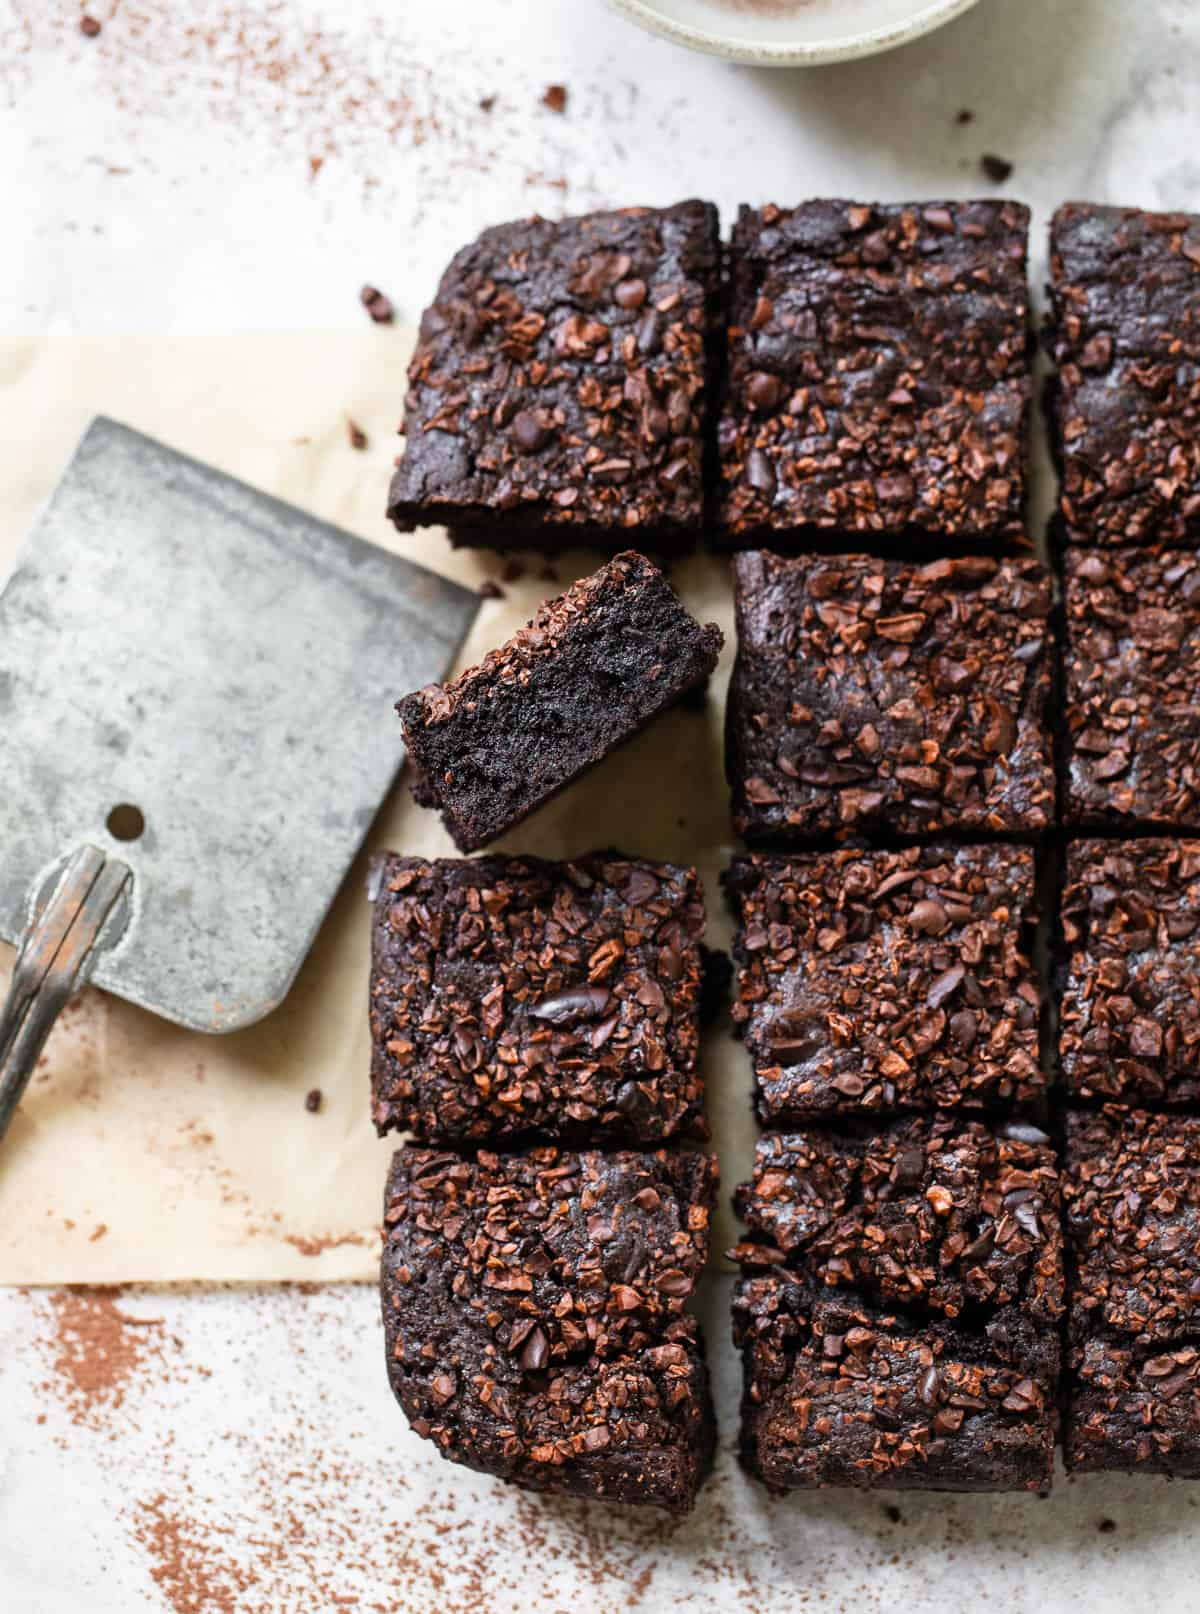 Olive Oil and Cocoa Brownies cut into squares, topped with cacao nibs